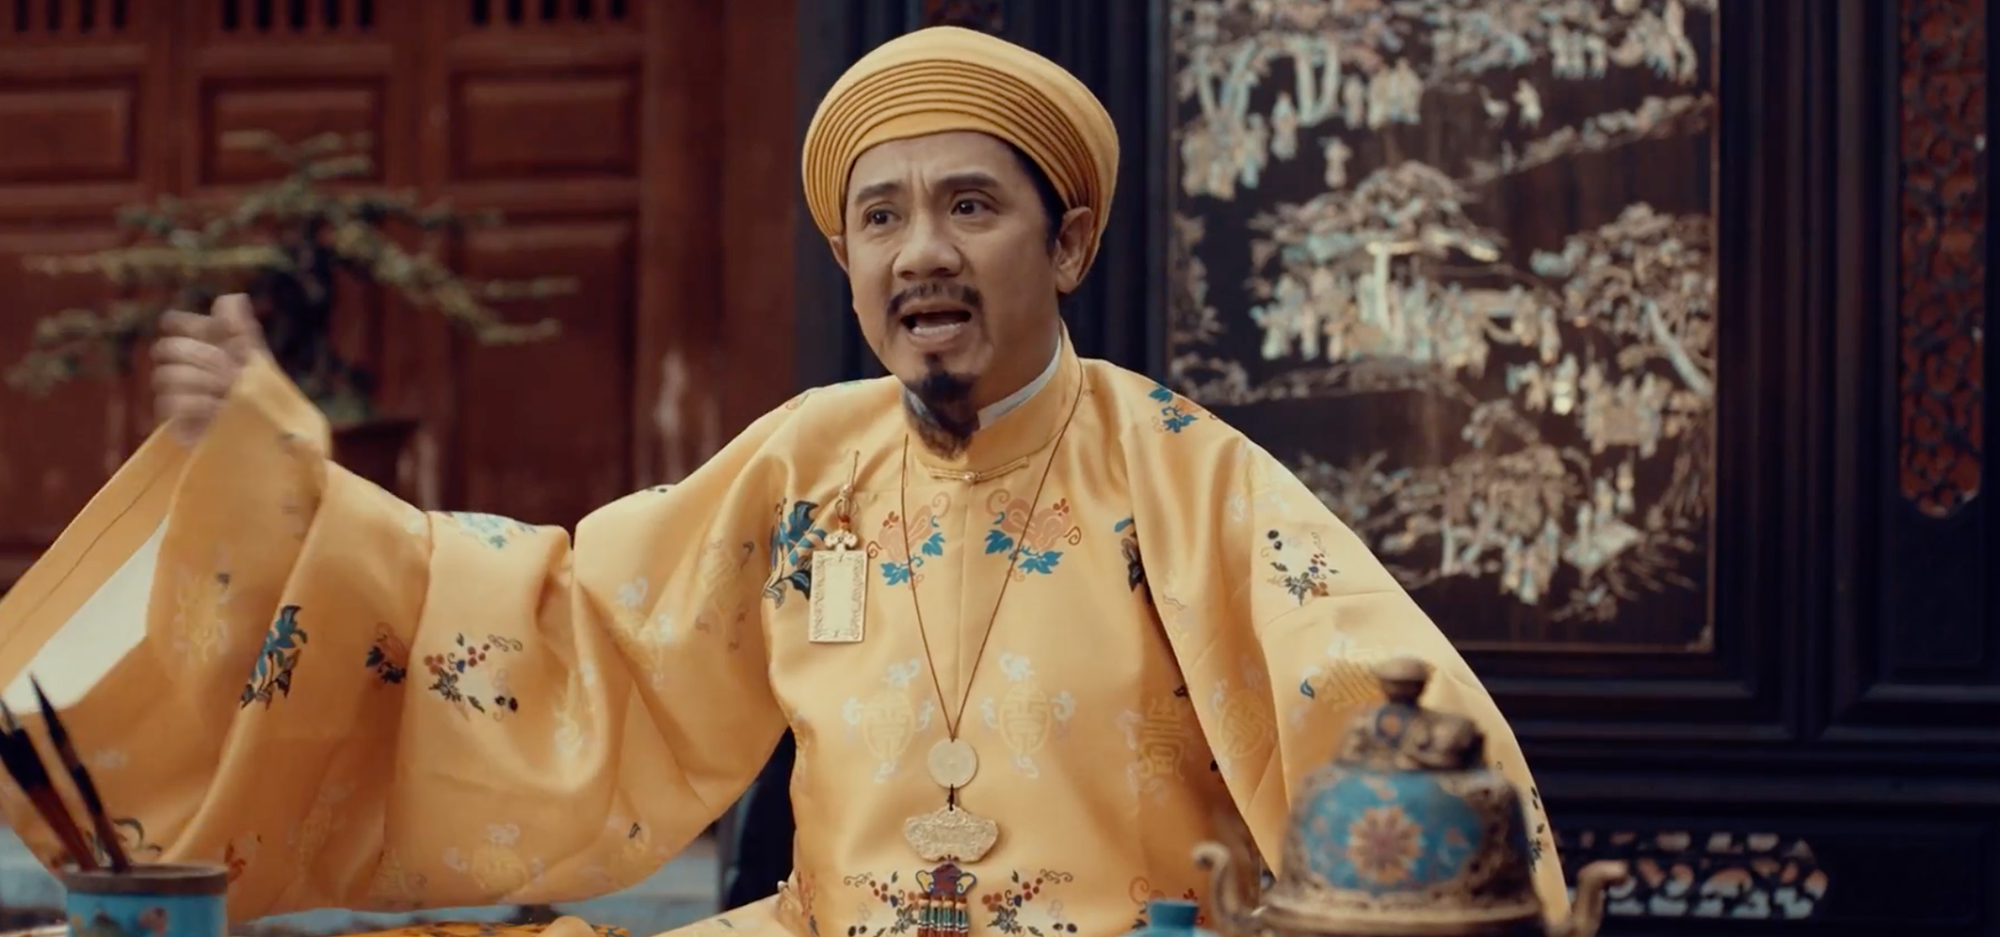 Actor Thanh Loc portrays Emperor Thieu Tri in Vietnamese palace historical drama 'Phuong Khau'.